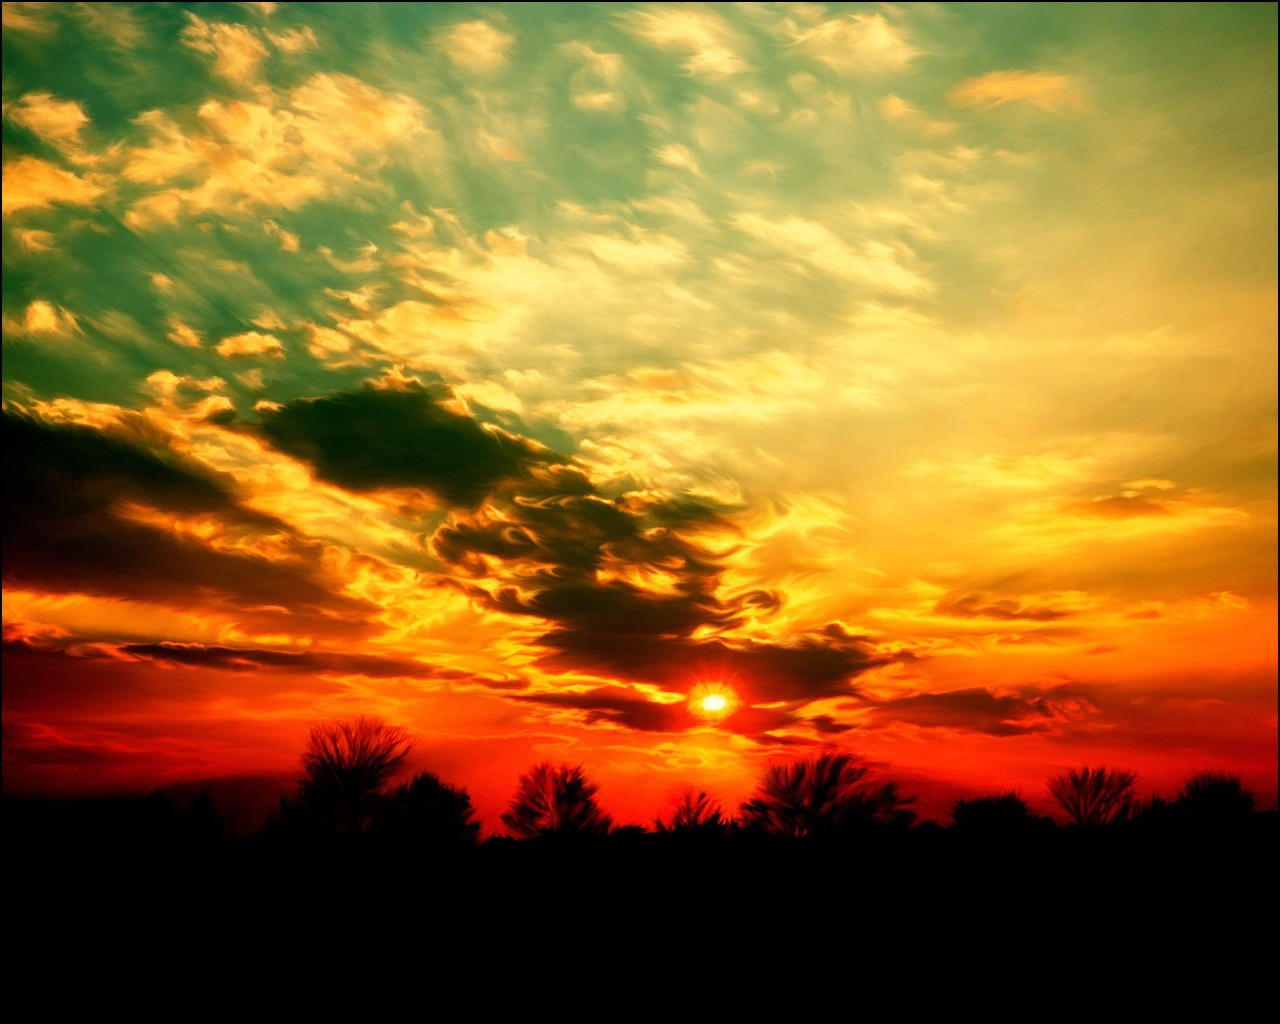 clouds_sunset_landscapes_hd-wallpaper-10085